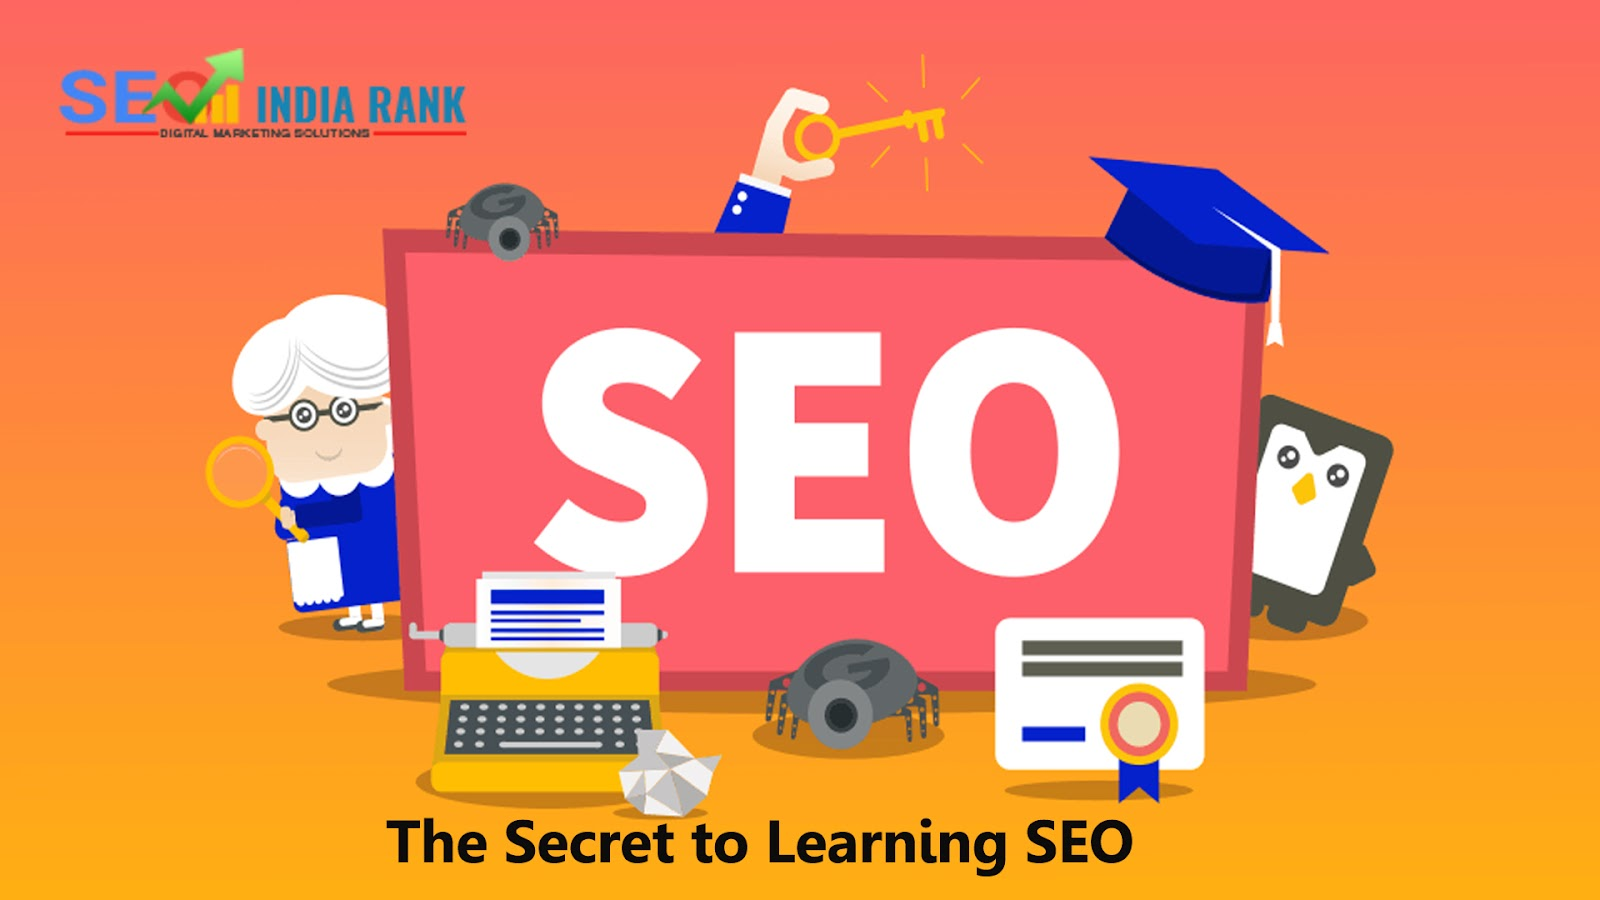 The Secret to Learning SEO